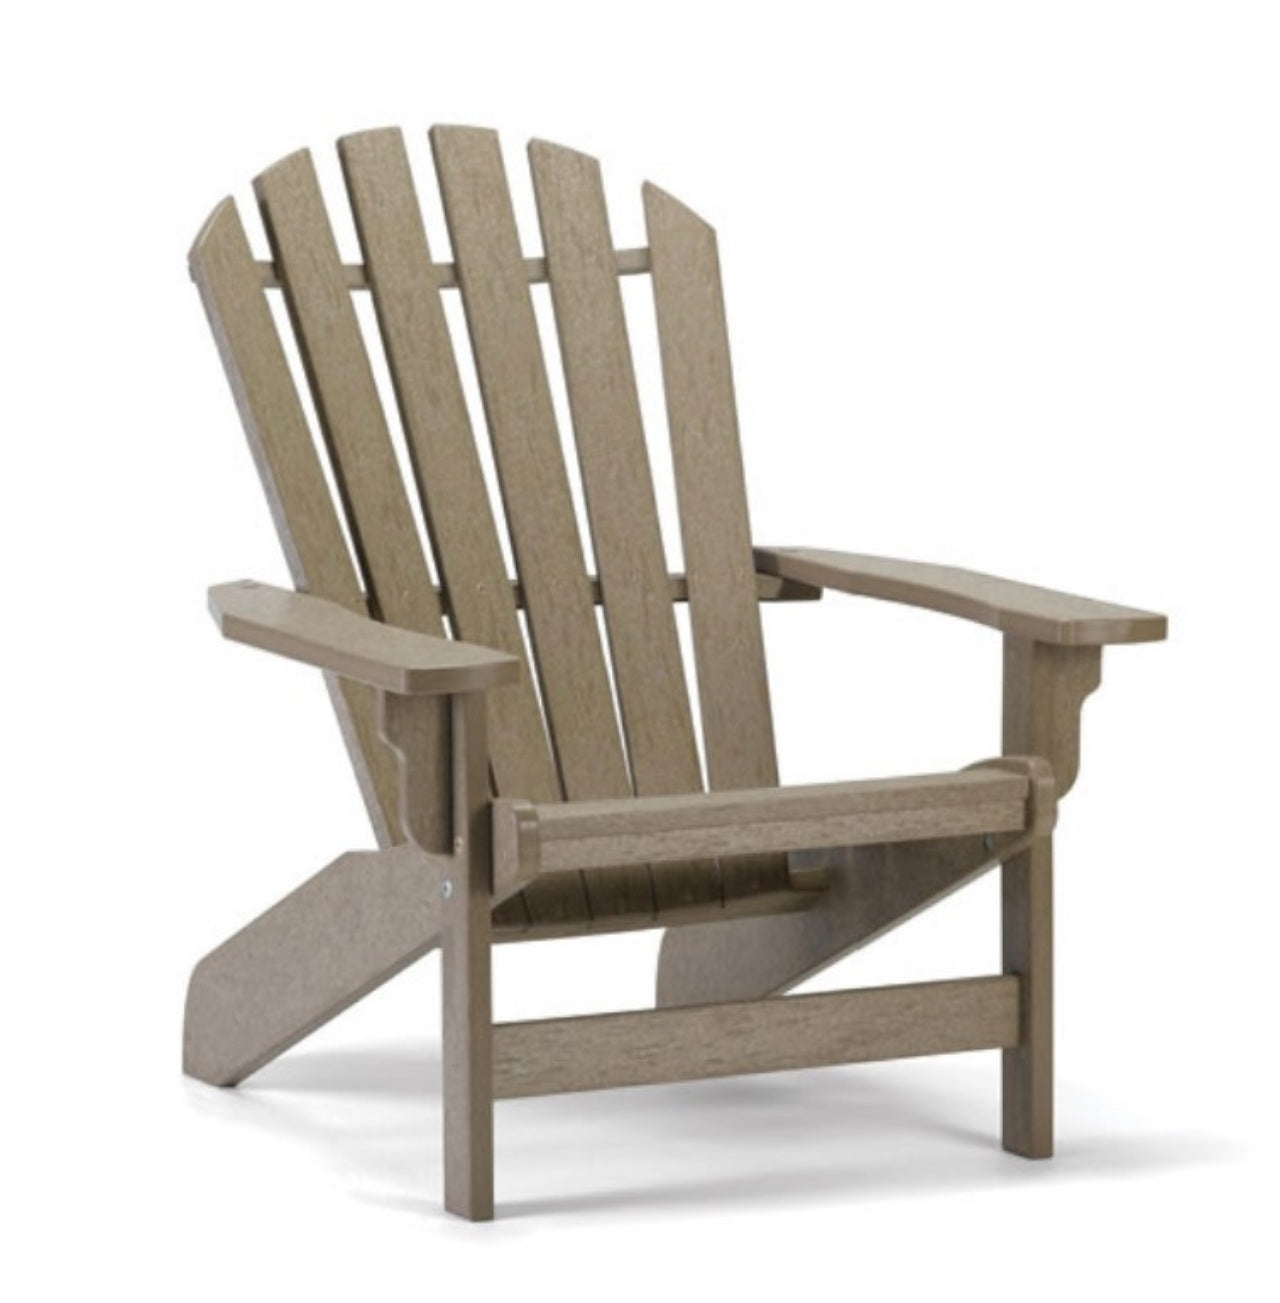 Coastal Adirondack Chair - Quick Ship 3 colors